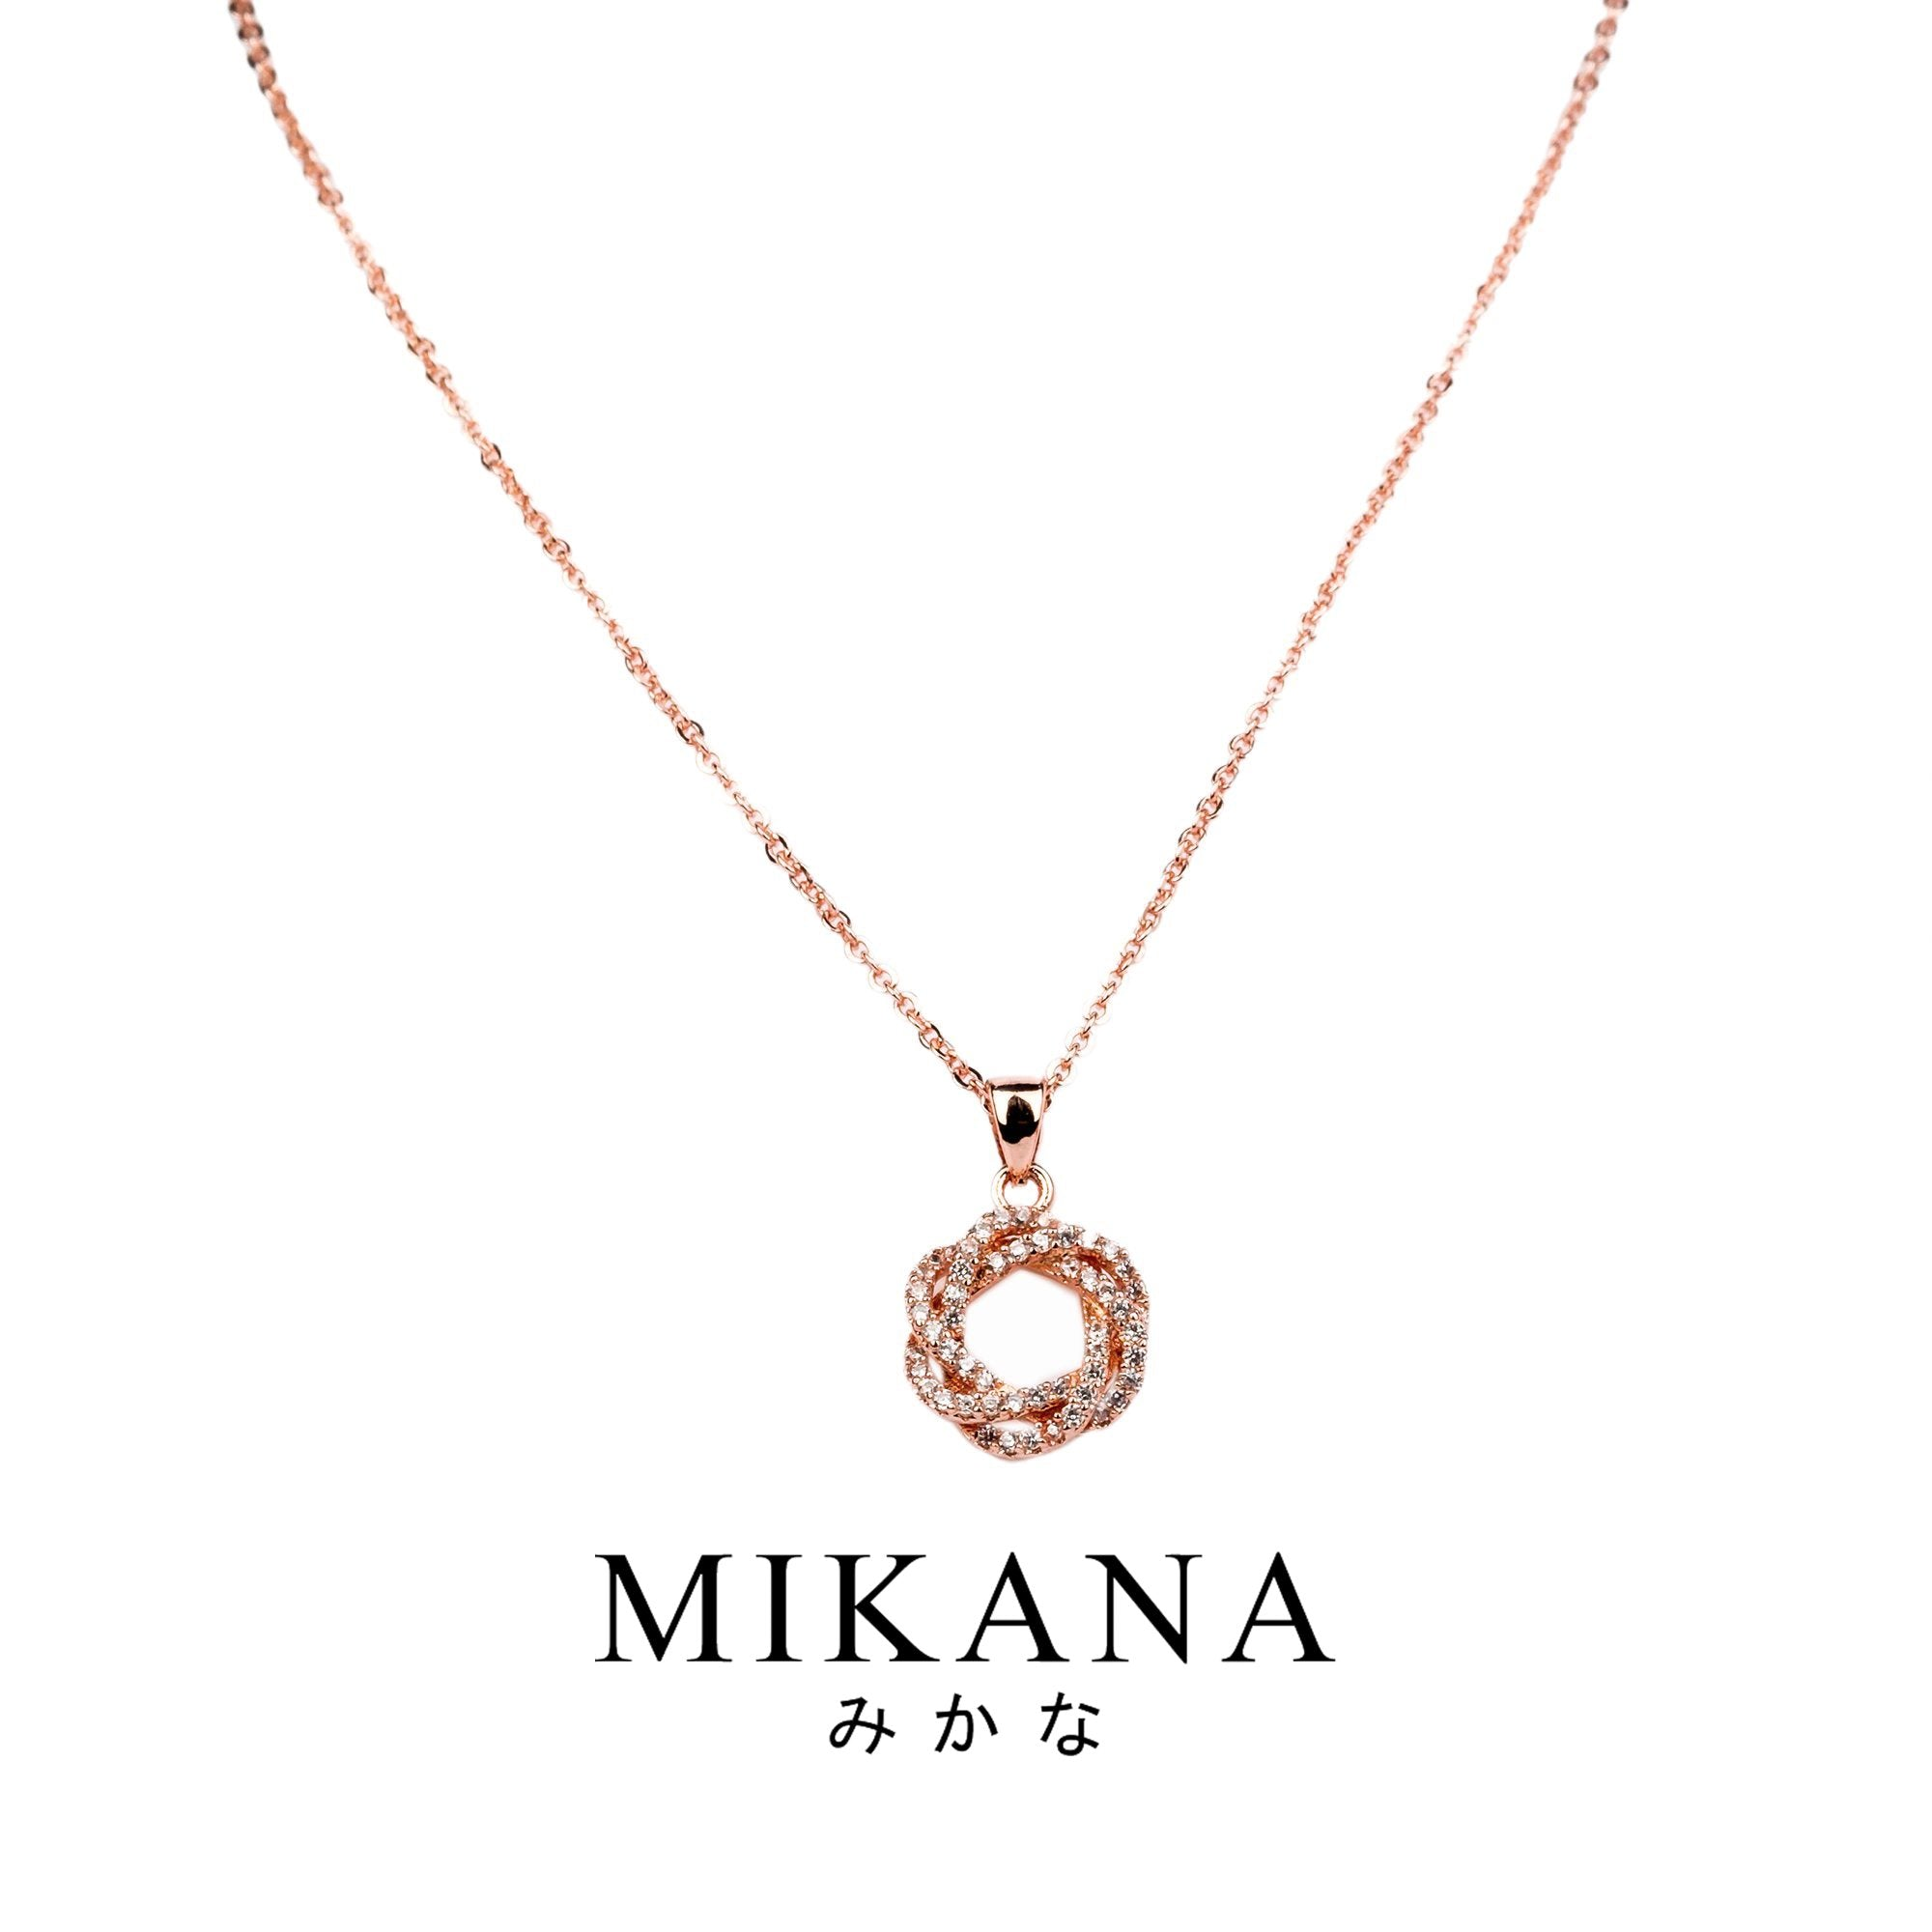 Mikana 18k Gold Plated Eirin Pendant Necklace accessories for women